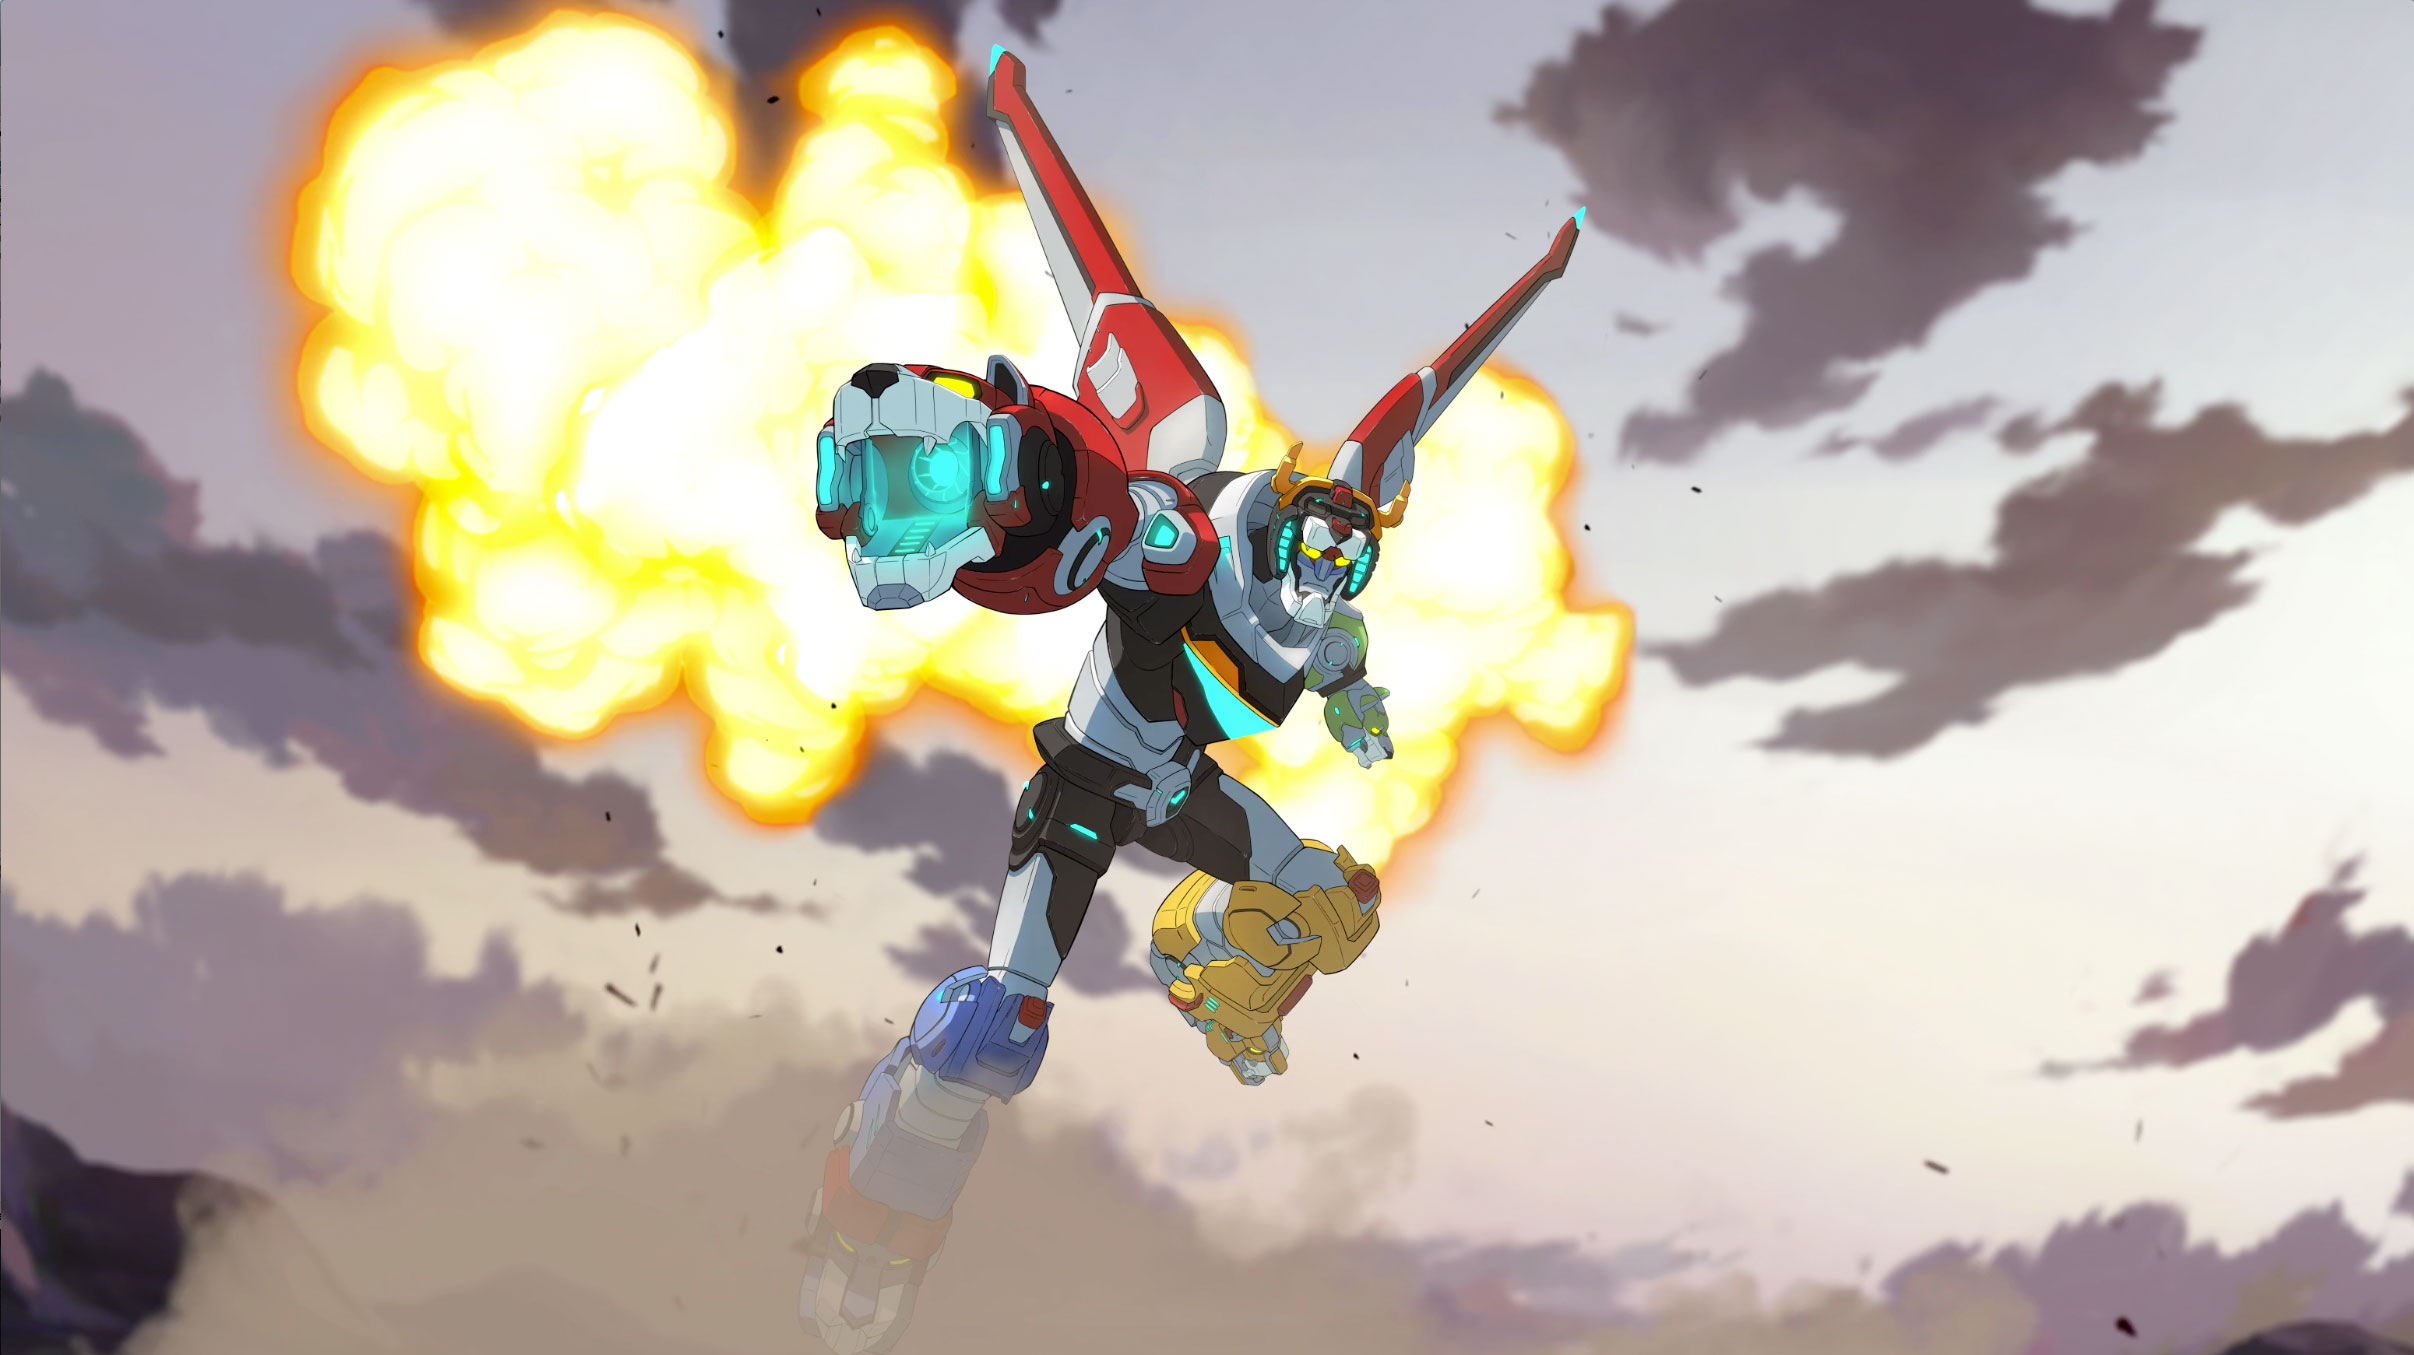 Voltron Video 280227 Hd Wallpaper Backgrounds Download